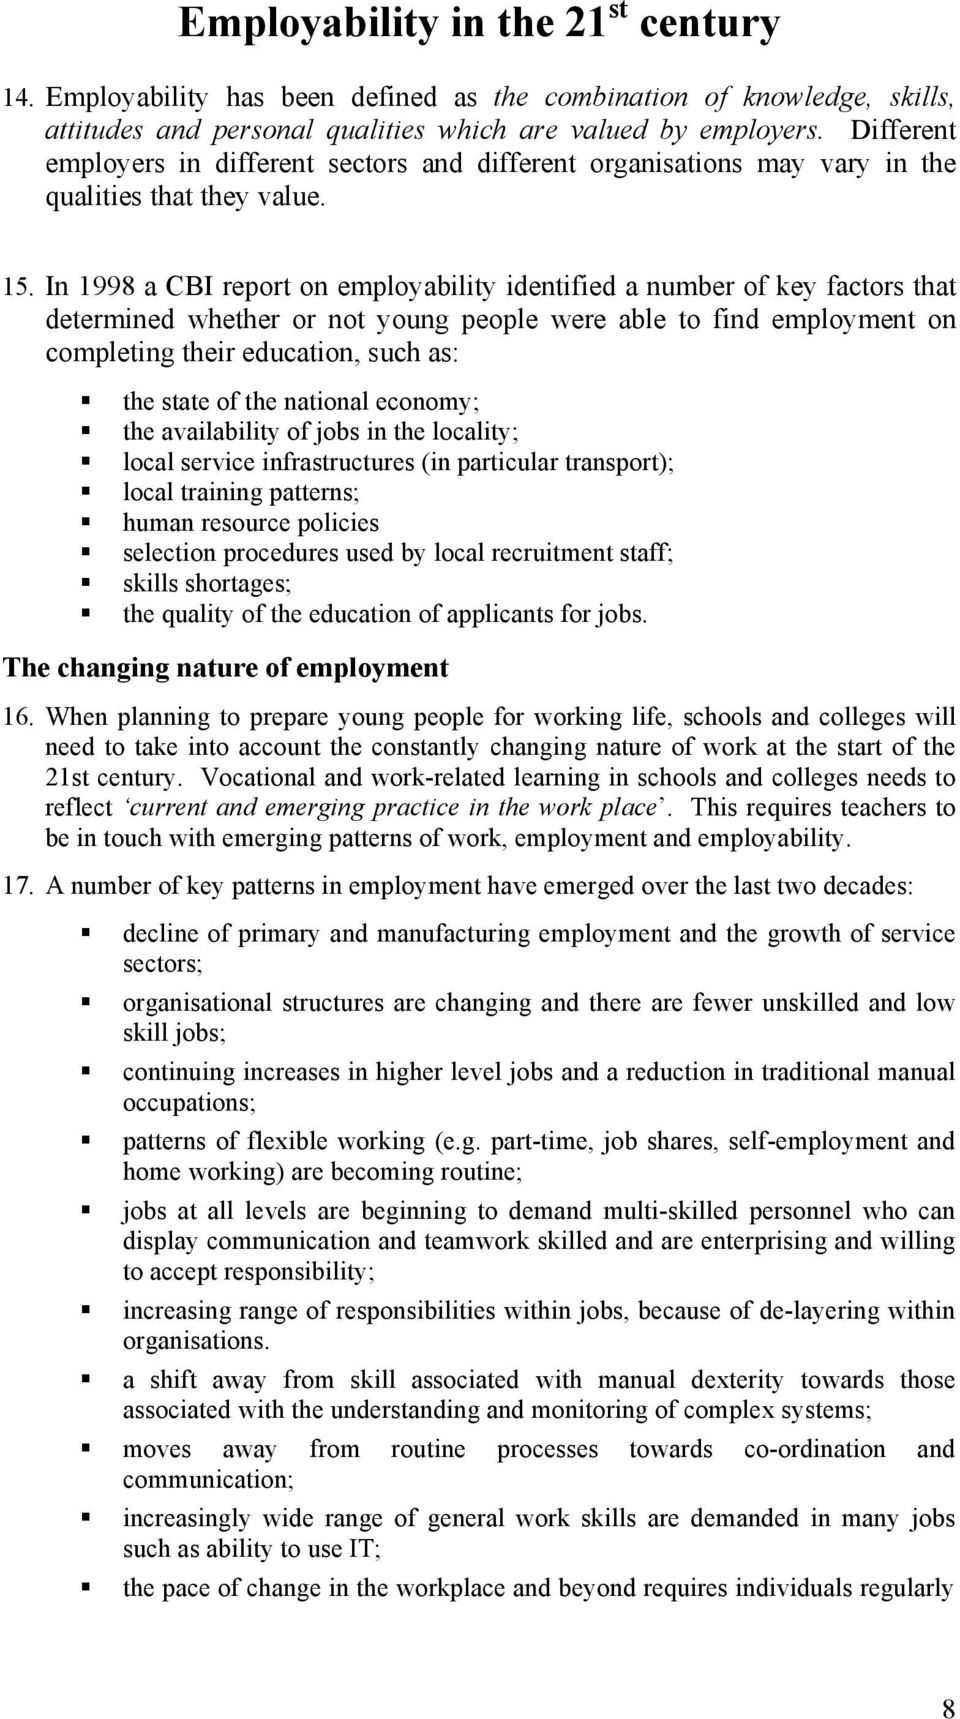 In 1998 a CBI report on employability identified a number of key factors that determined whether or not young people were able to find employment on completing their education, such as: the state of